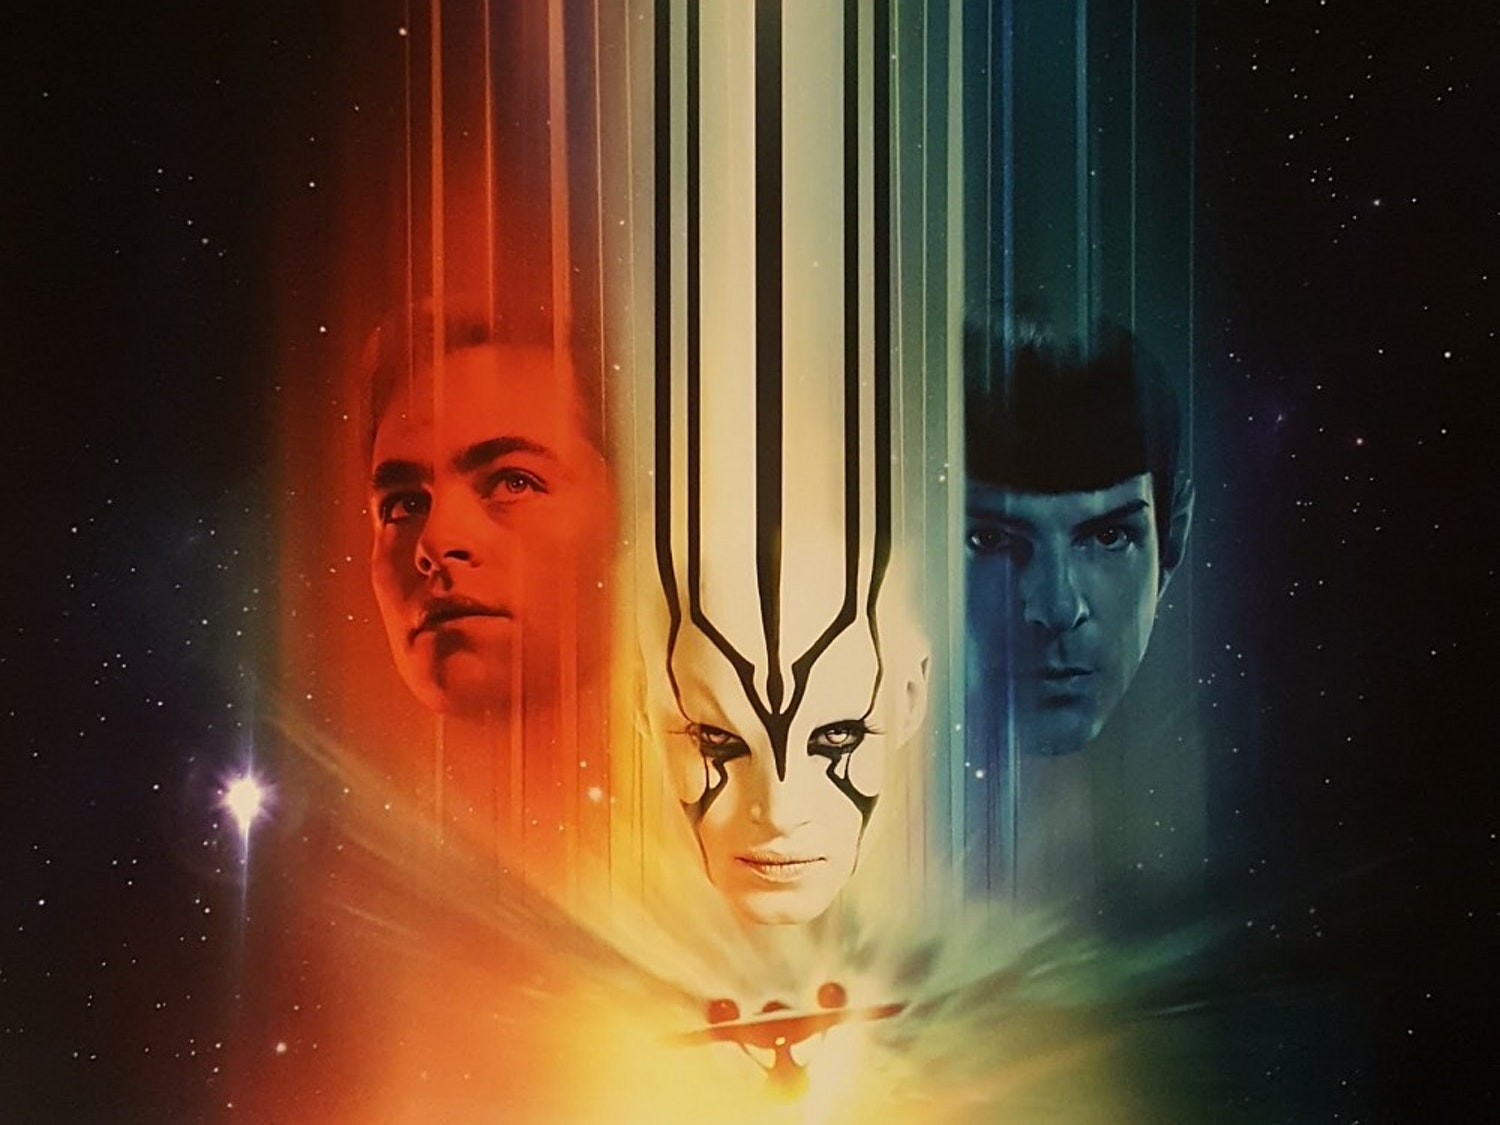 How to Stop Worrying and Love Bad 'Star Trek' Movies